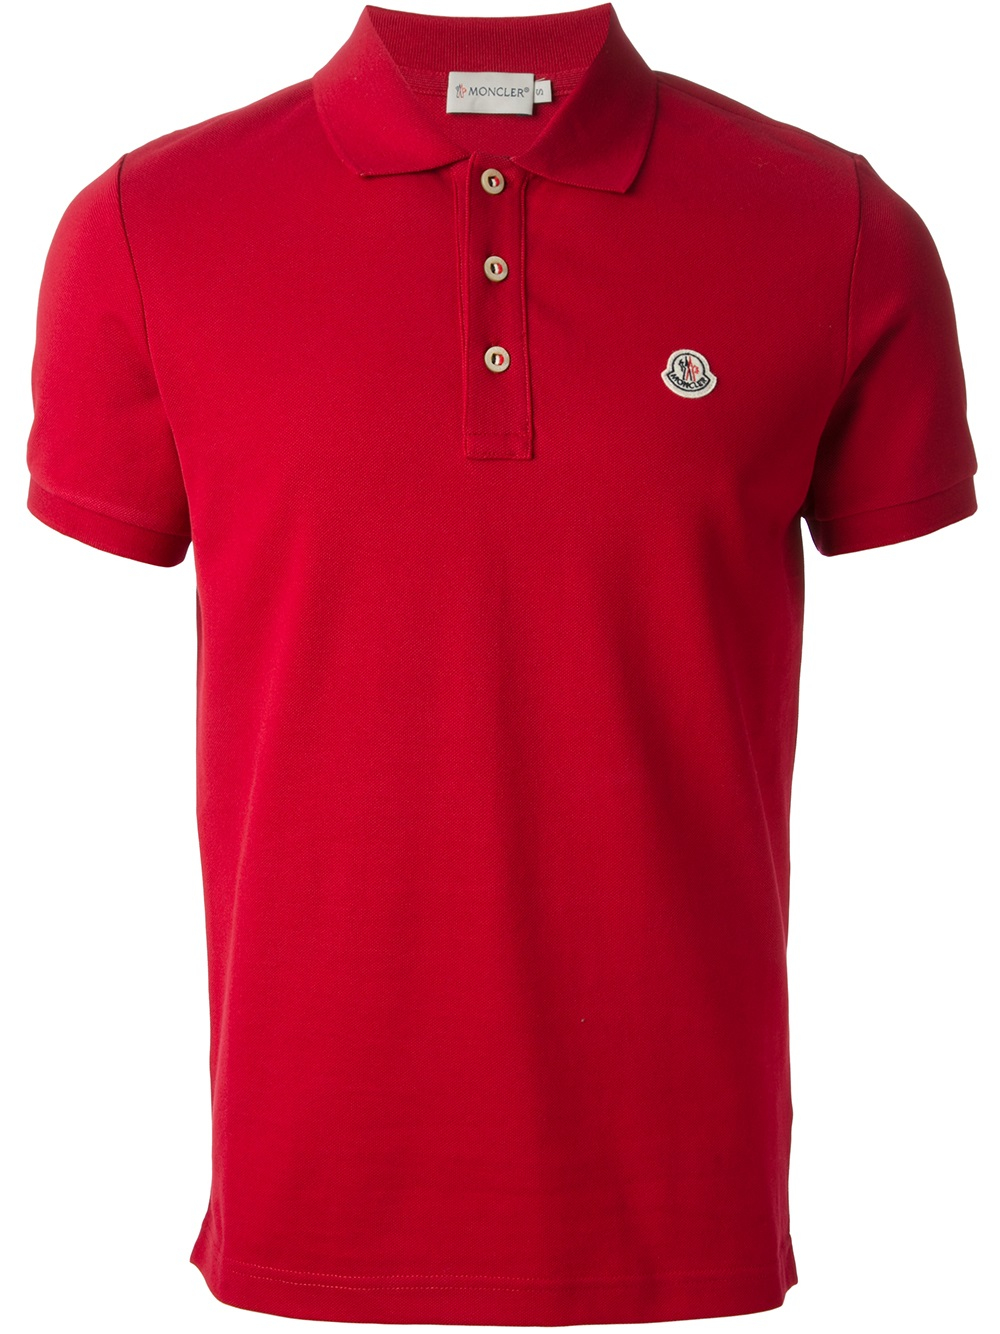 Moncler Polo Shirt In Red For Men Lyst